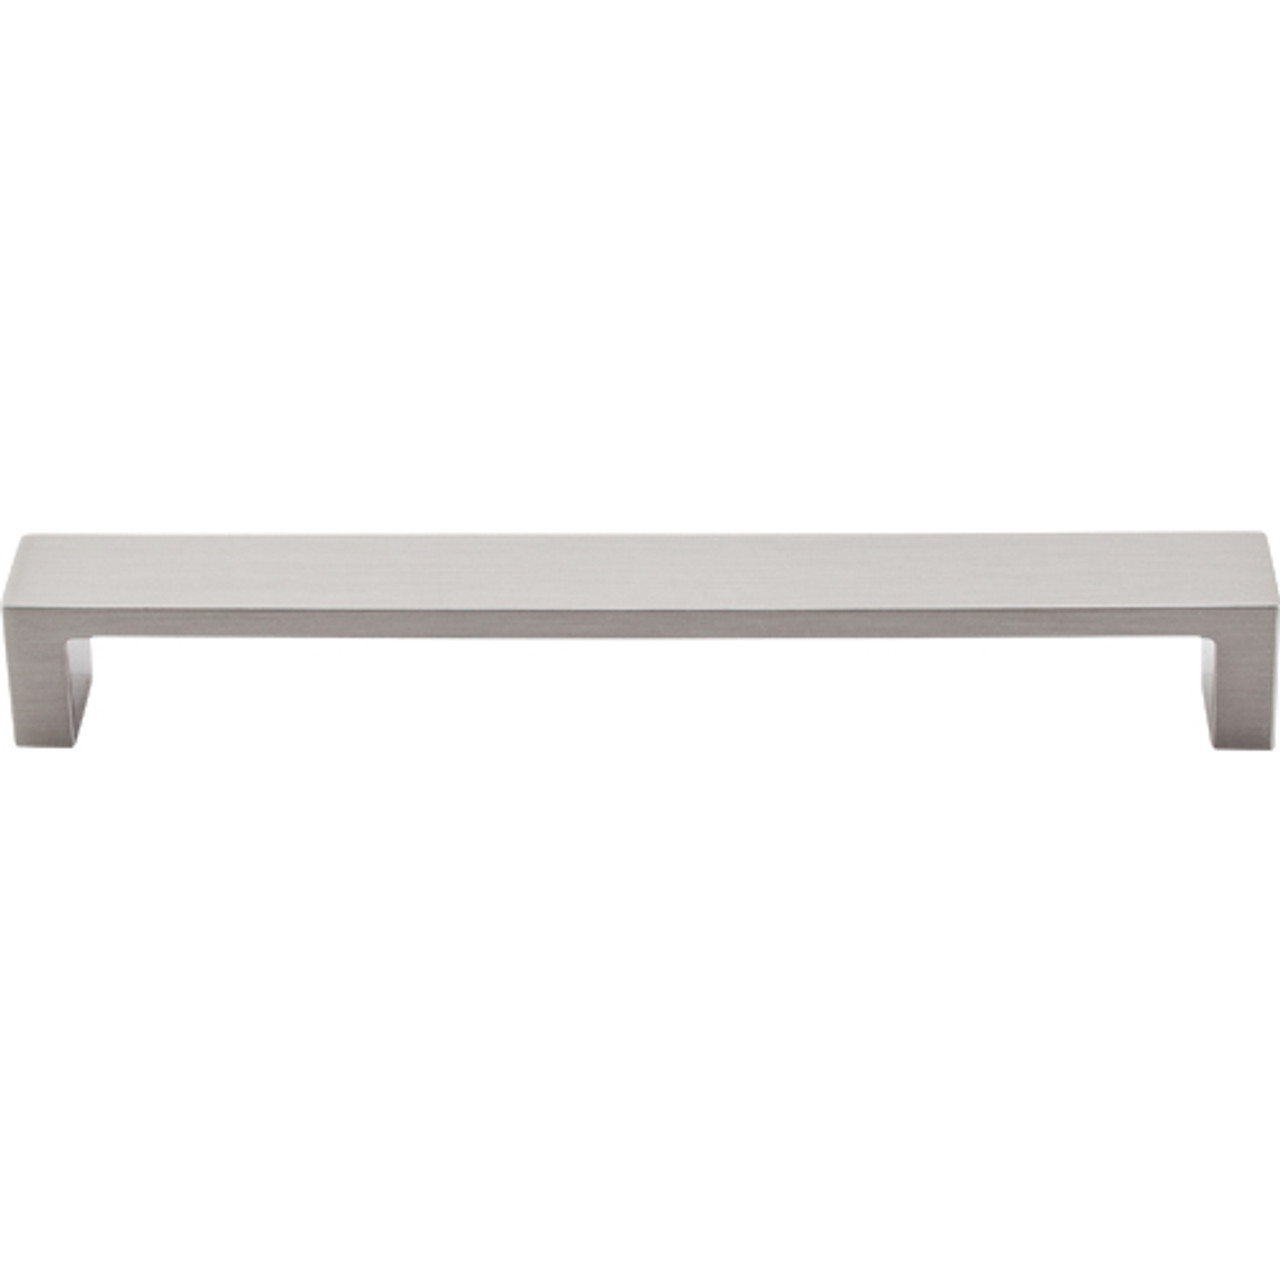 "Top Knobs - Modern Metro Pull 7"" (c-c)  - Brushed Satin Nickel  (TKTK252BSN)"